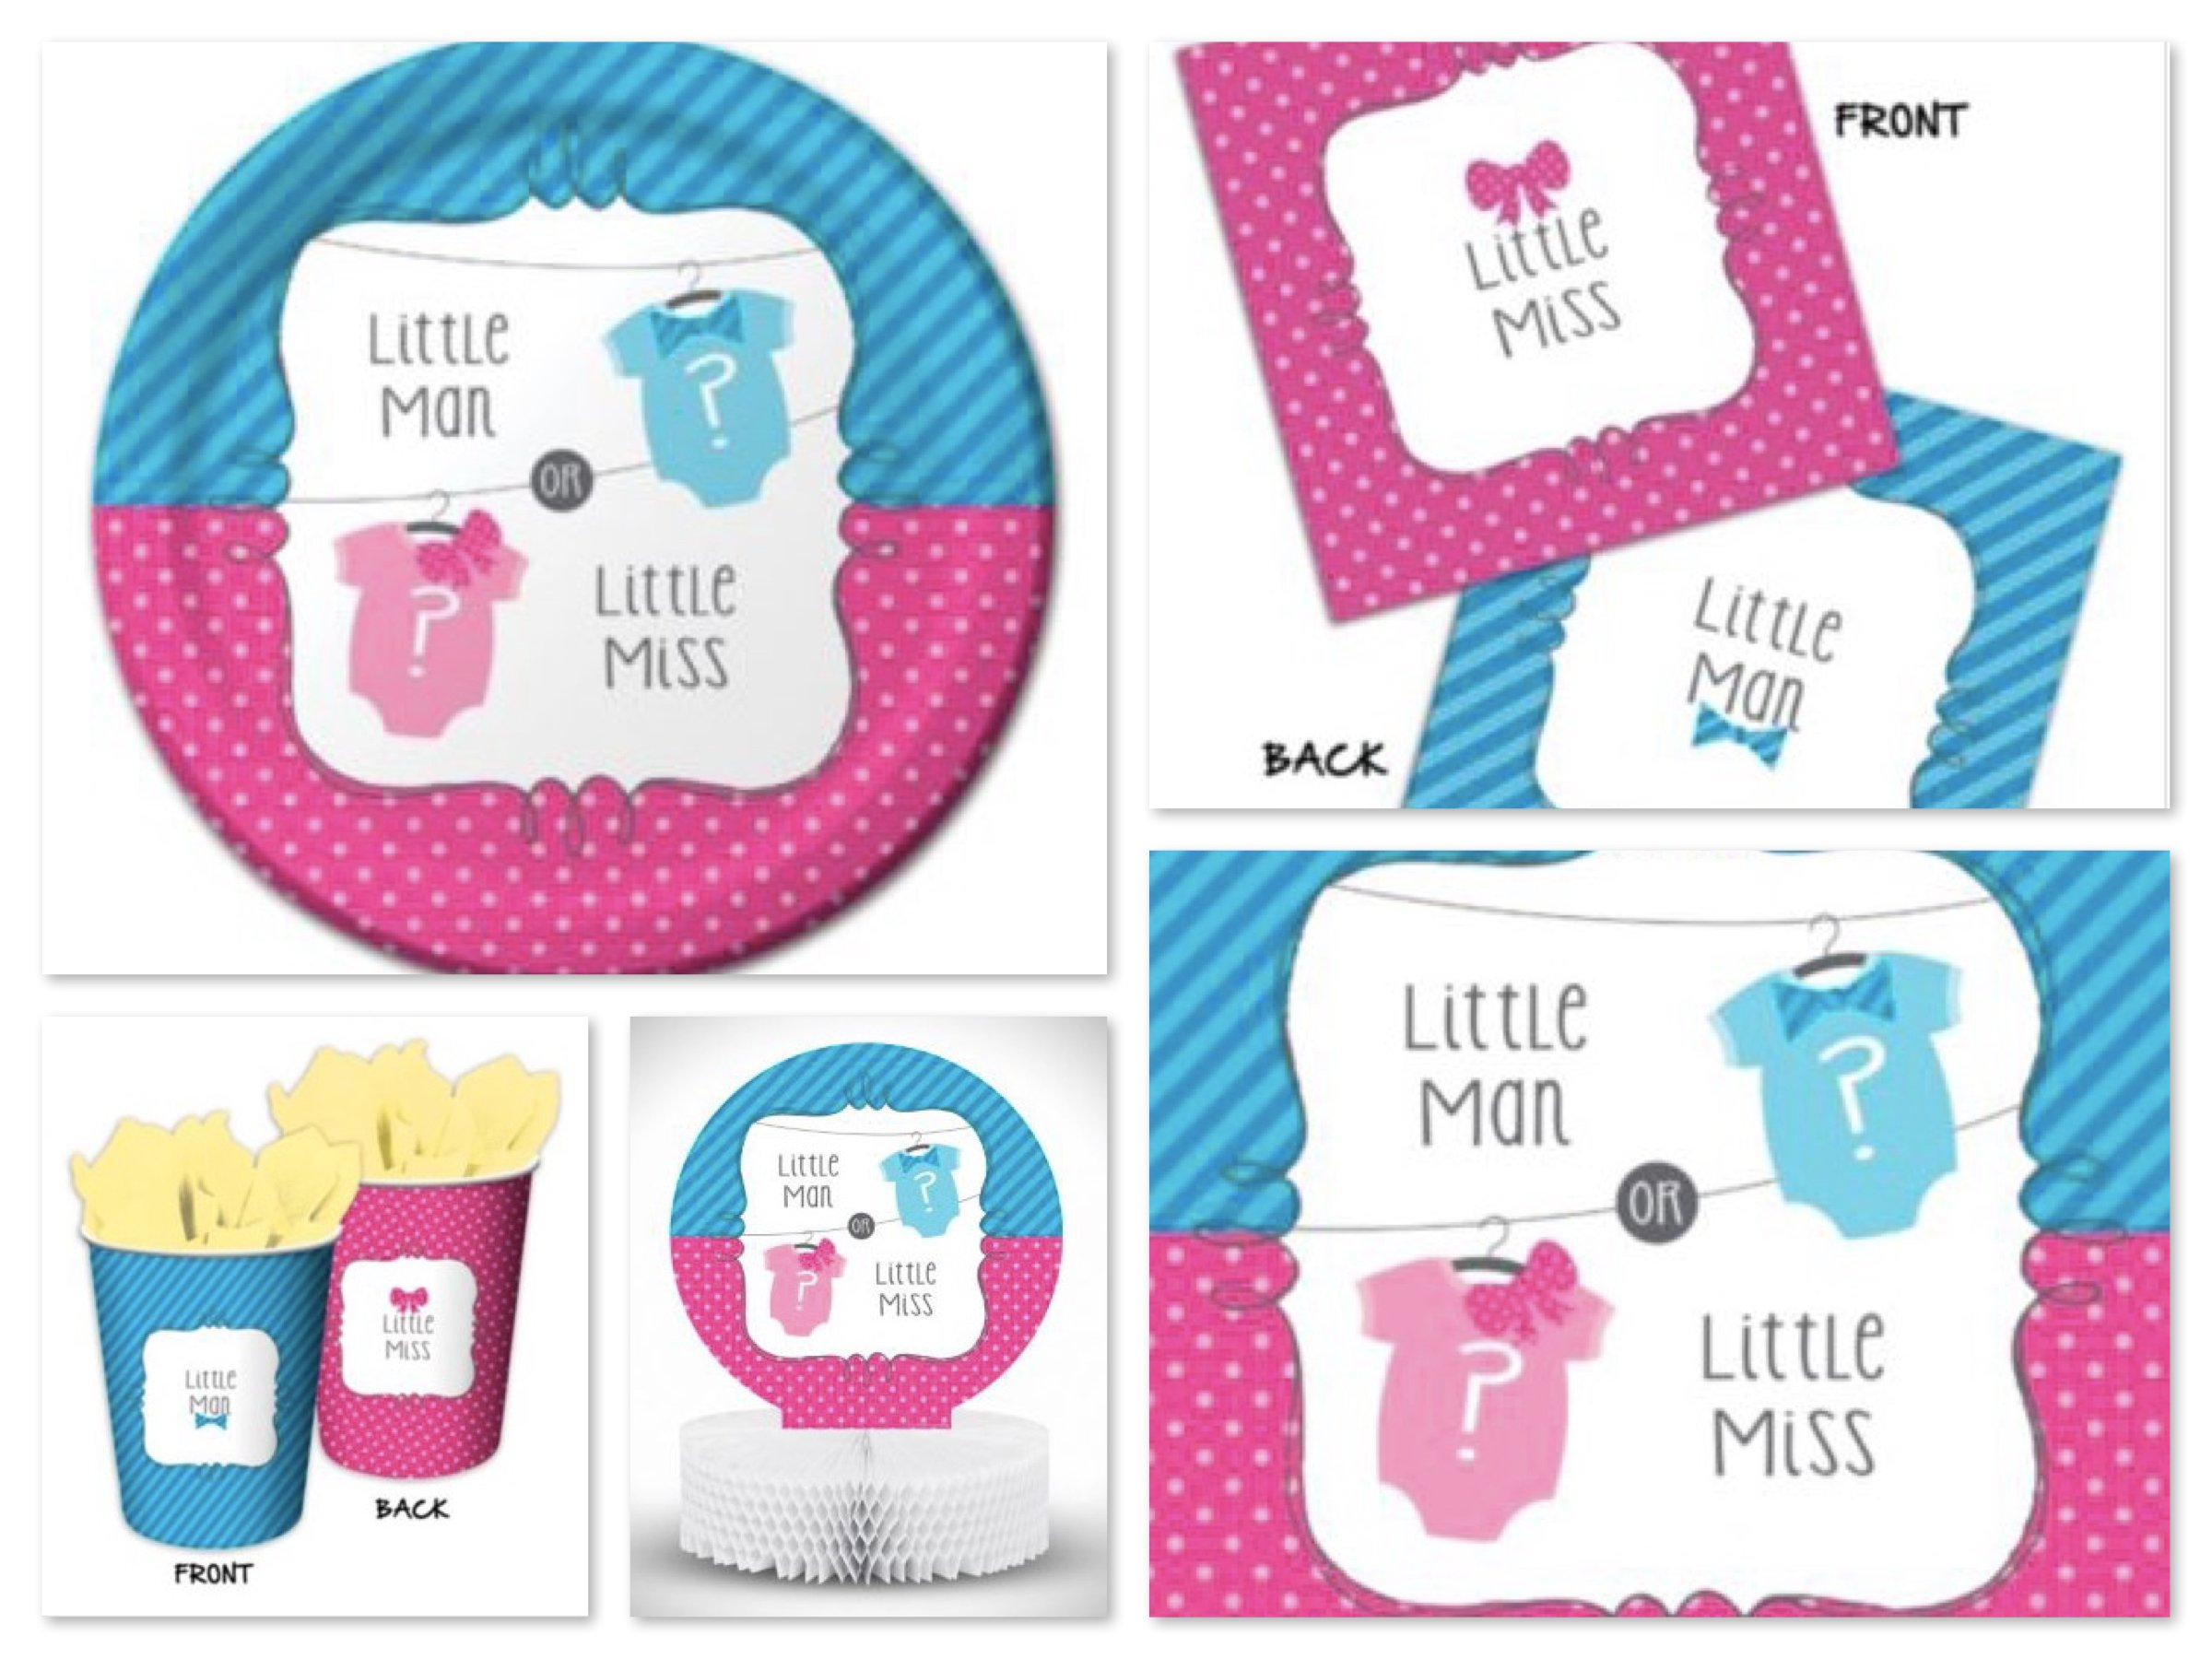 Little Man or Little Miss Gender Reveal Party Supplies